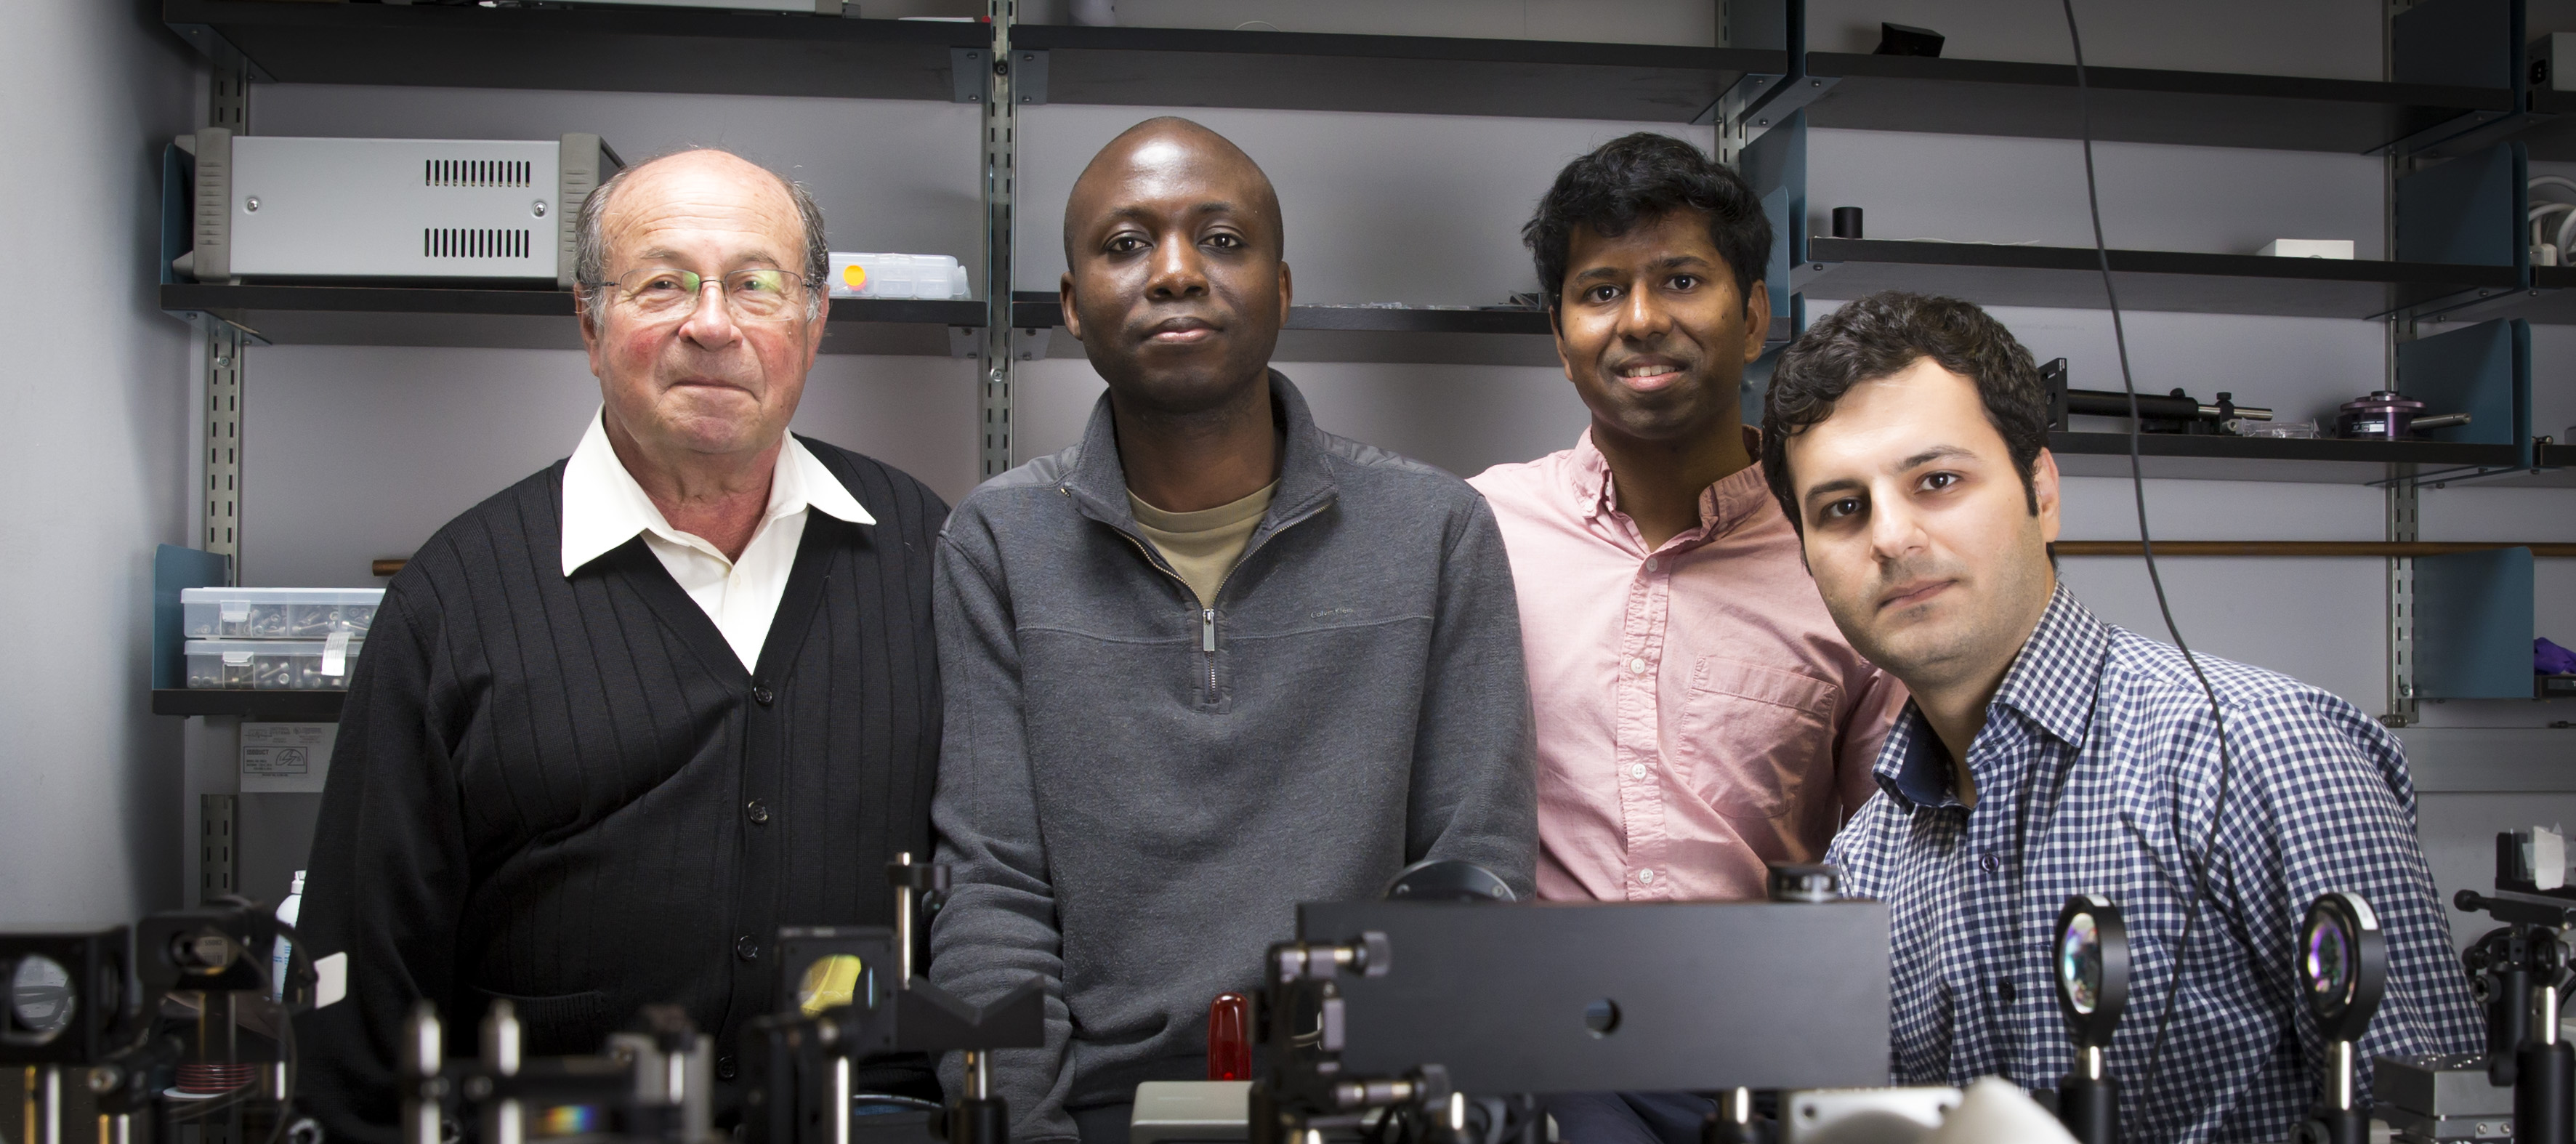 Kante Research Group Demonstrates First BIC Laser